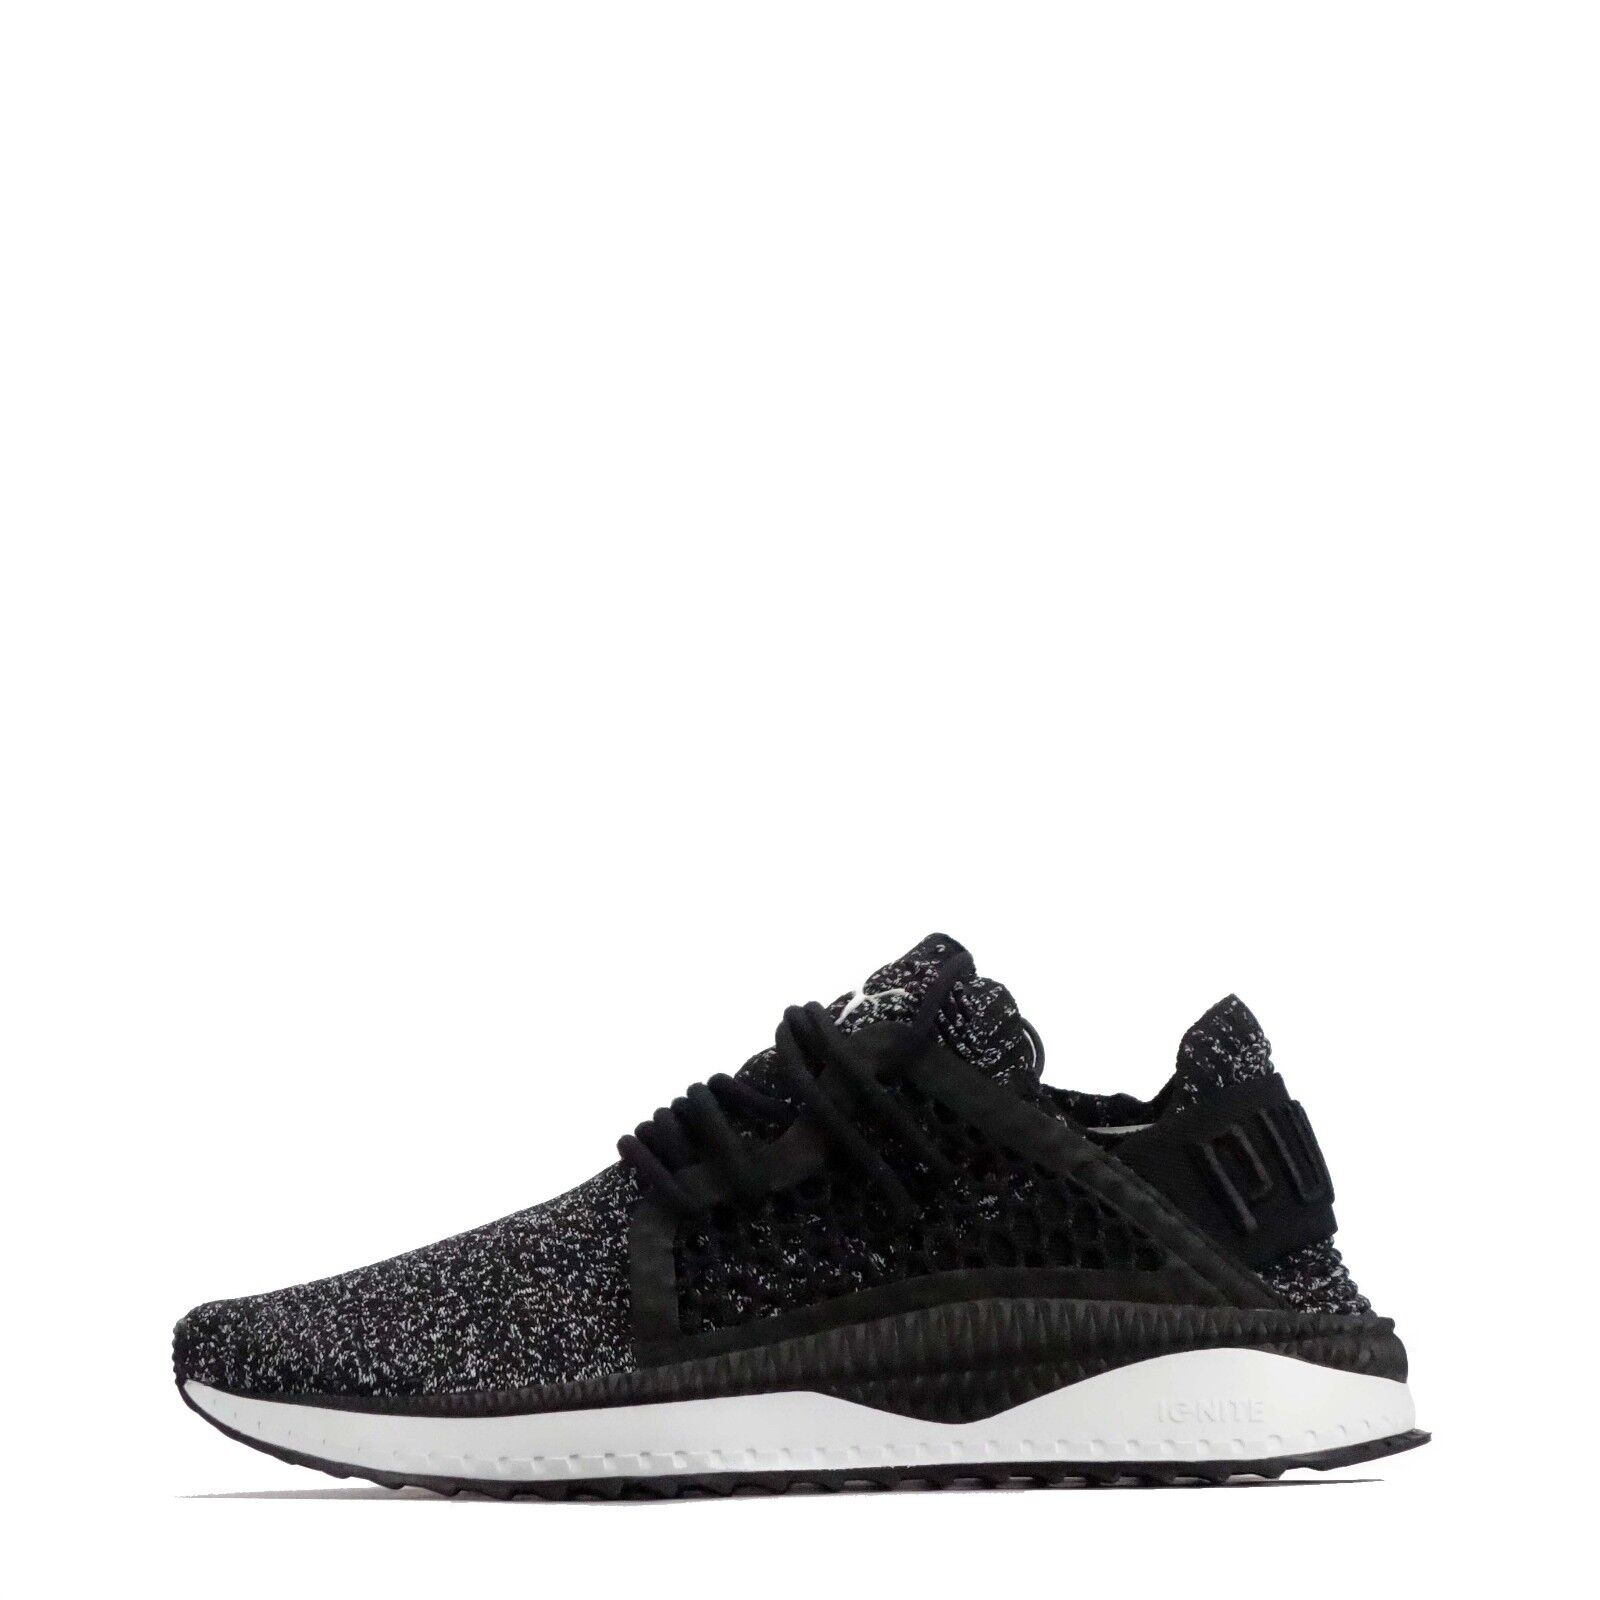 Puma Tsugi Netfit Evoknit Men's Running Style Lace Up Shoes in Black/White